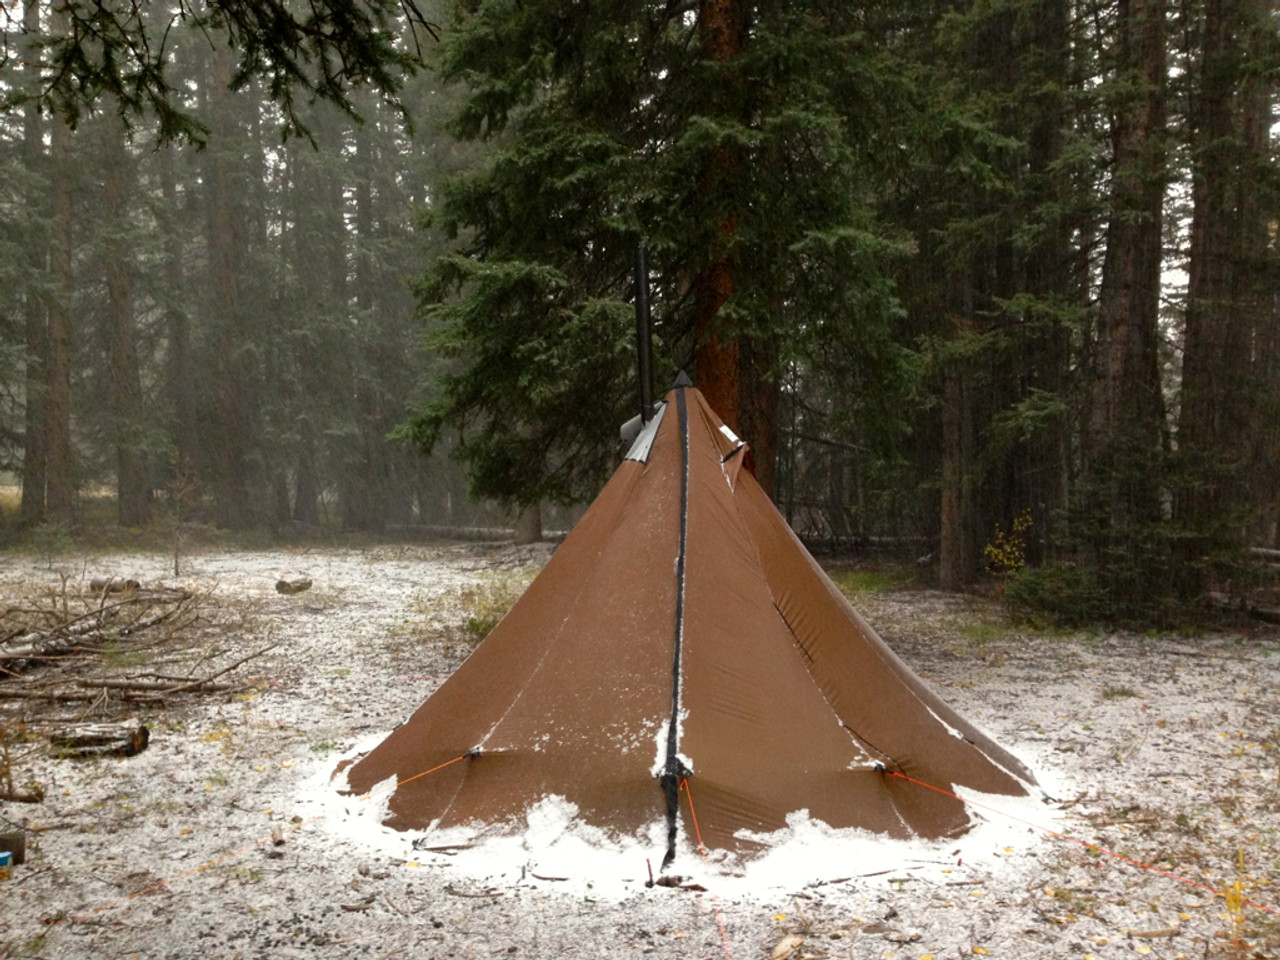 4 Person Tipi Hot Tent Combo & 4 Person Ultralight Tipi with Wood Stove